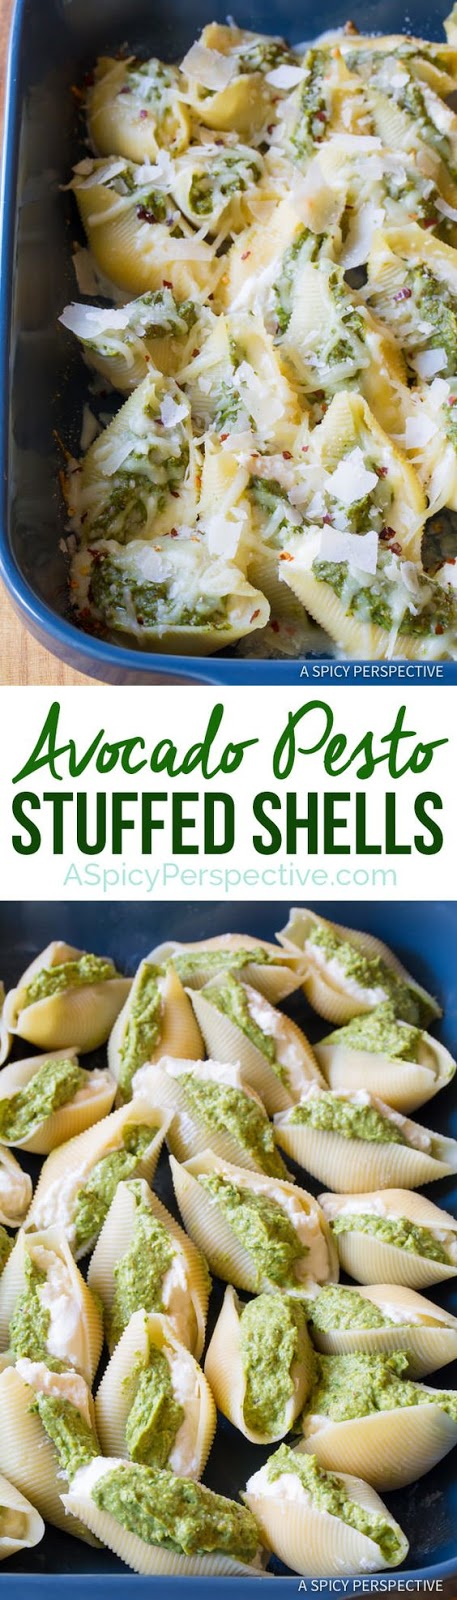 Avocado Pesto Stuffed Shells